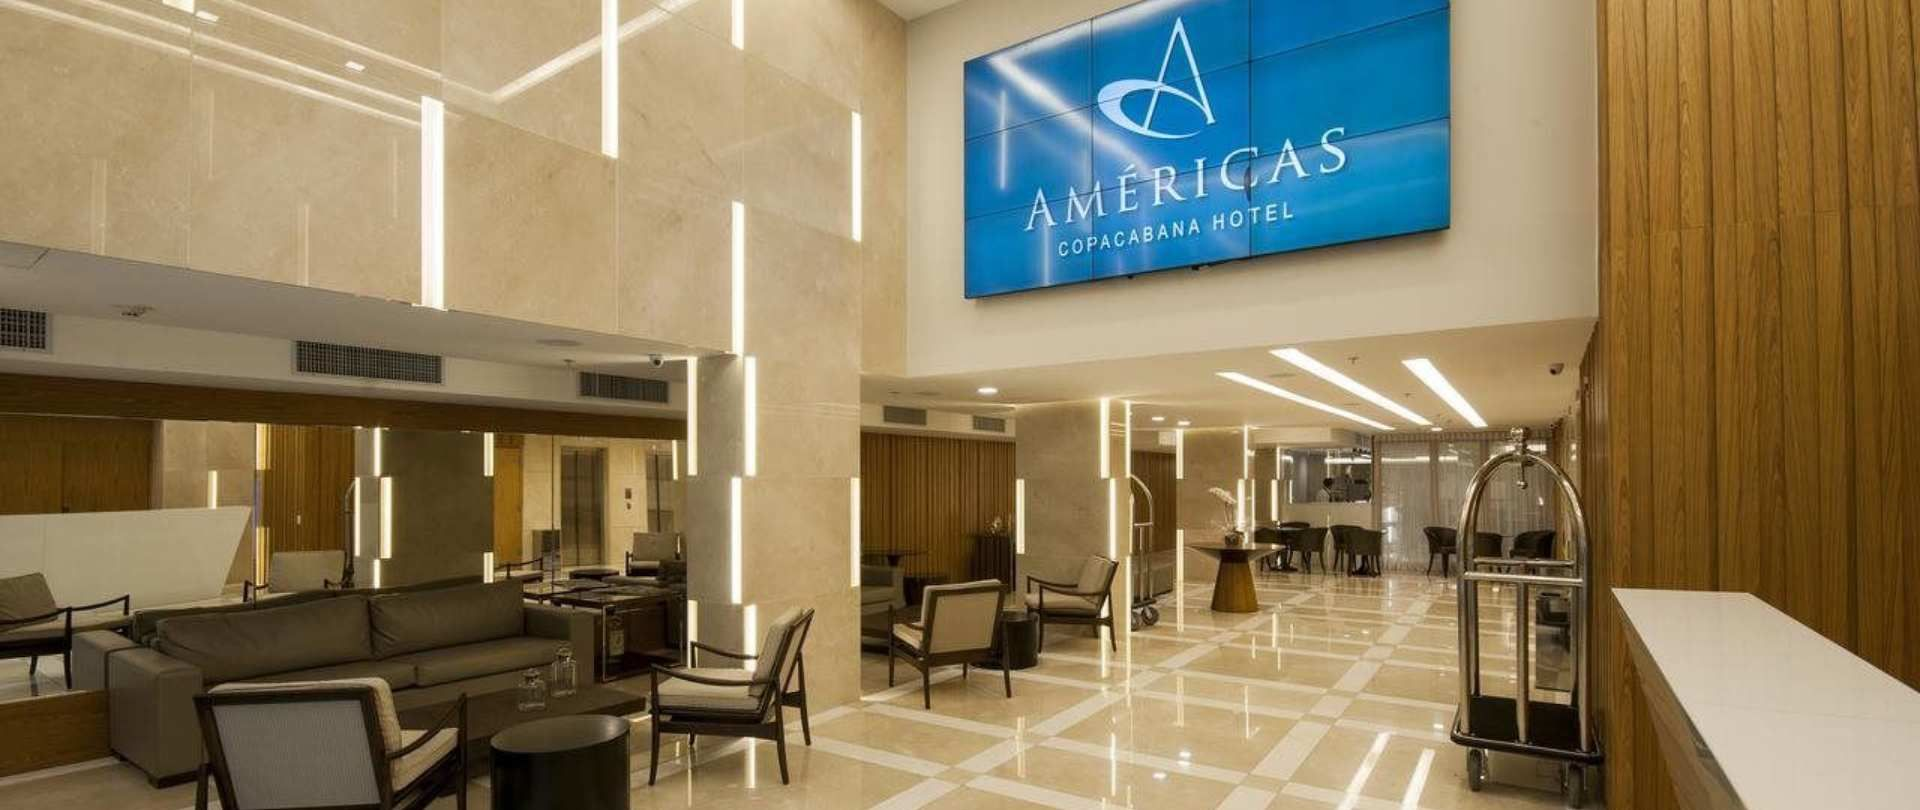 Américas Copacabana   Rua Barata Ribeiro, 550,Copacabana, Rio de Janeiro, 22040-002, Brasil  +55 (21) 34459666   reservas@americascopacabanahotel.com.br   Located just two blocks from one of the most famous beaches in Brazil and just a few meters from the Metro, the newly opened AMERICAS Copacabana Hotel offers comfort, security and modernity in its 206 rooms and restaurant with excellent cuisine and capacity for 140 people.